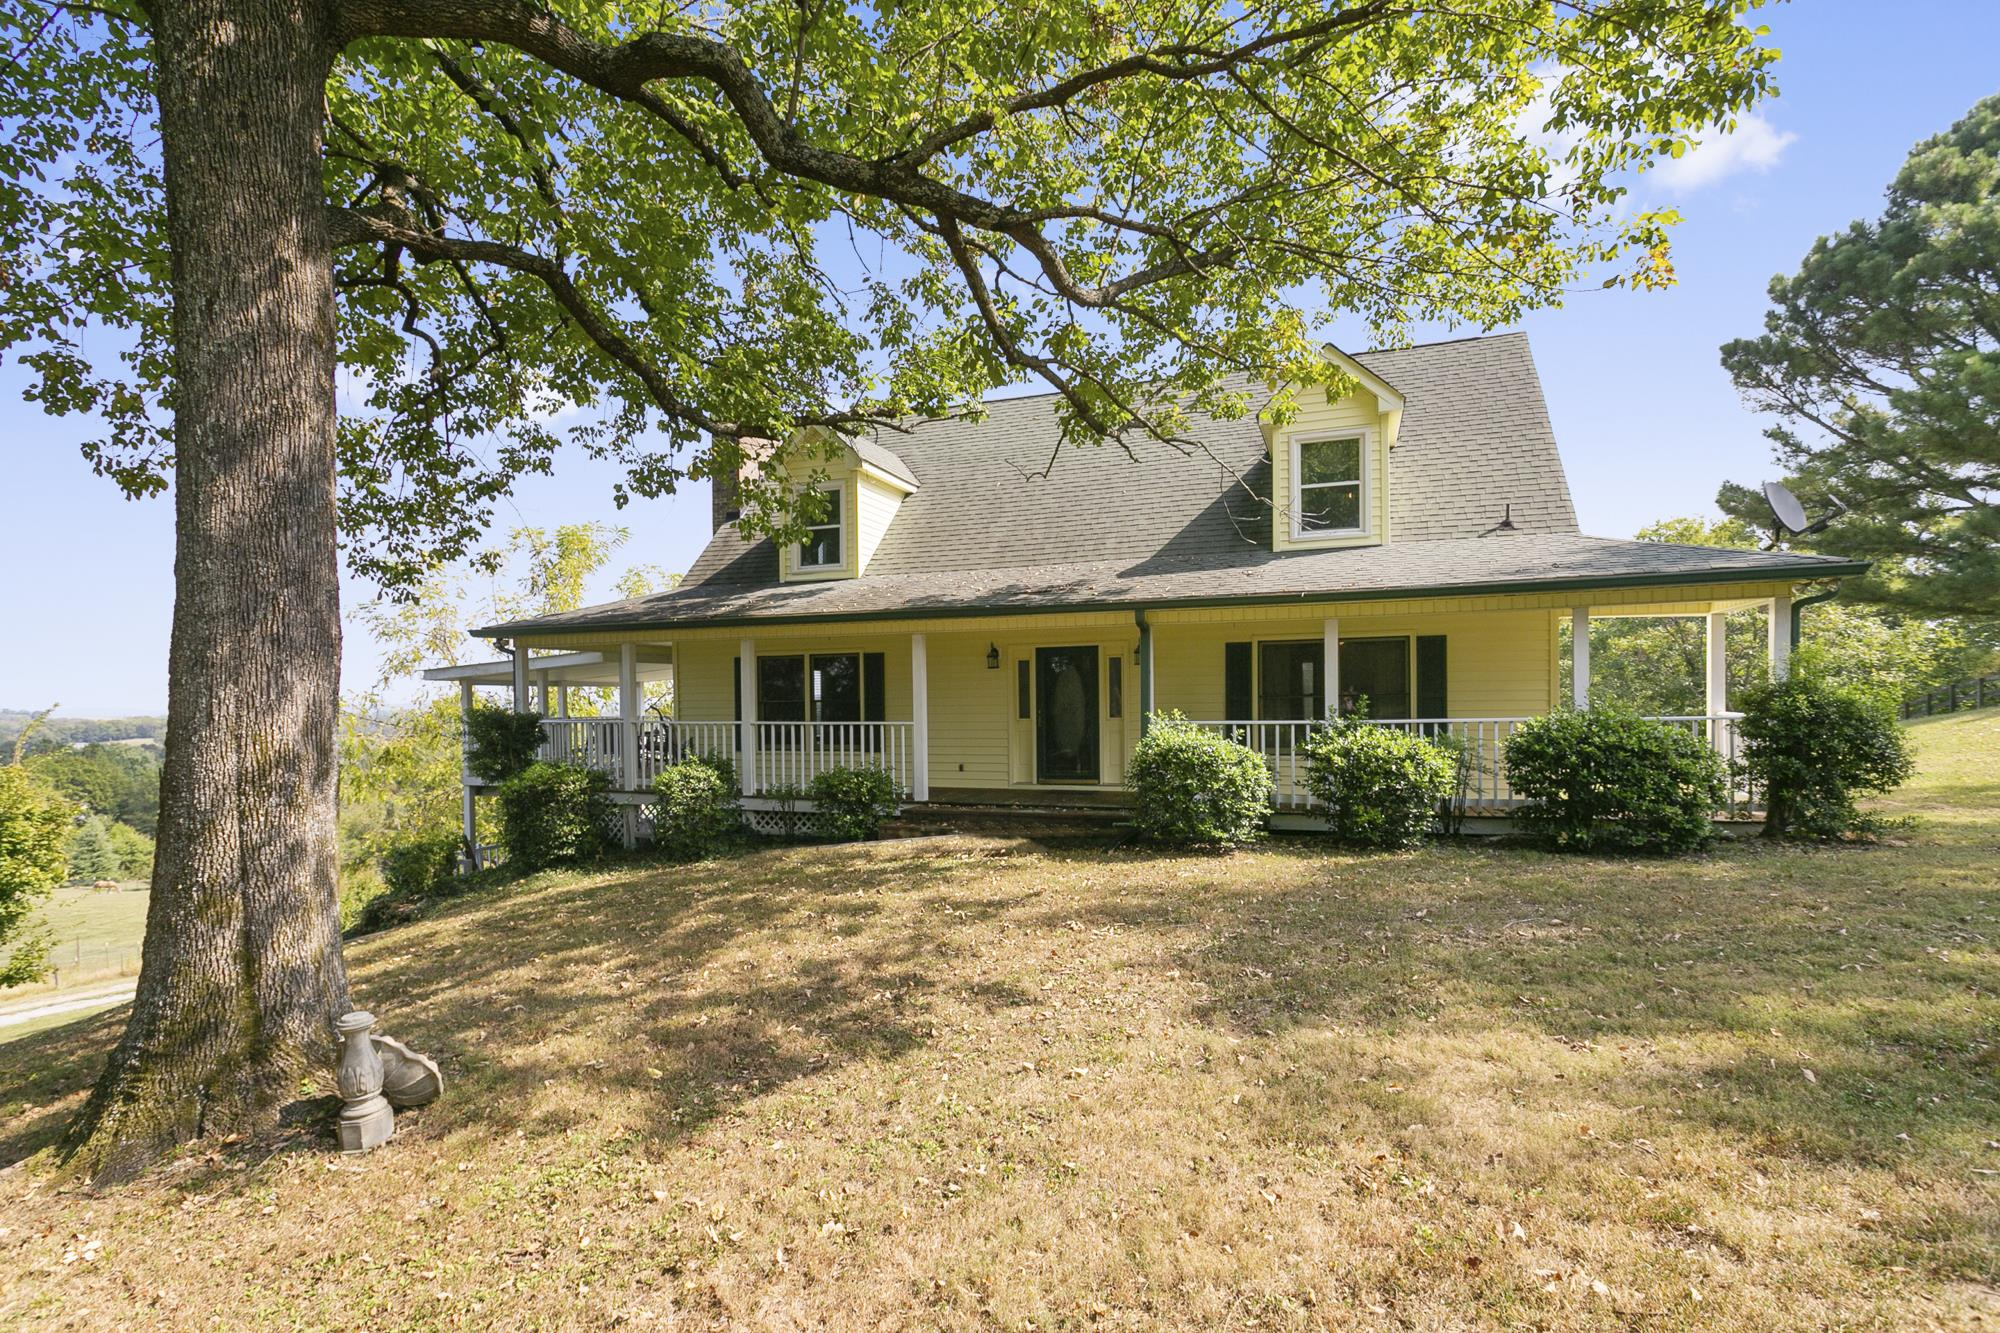 2381 Shop Springs Rd, Watertown, TN 37184 - Watertown, TN real estate listing